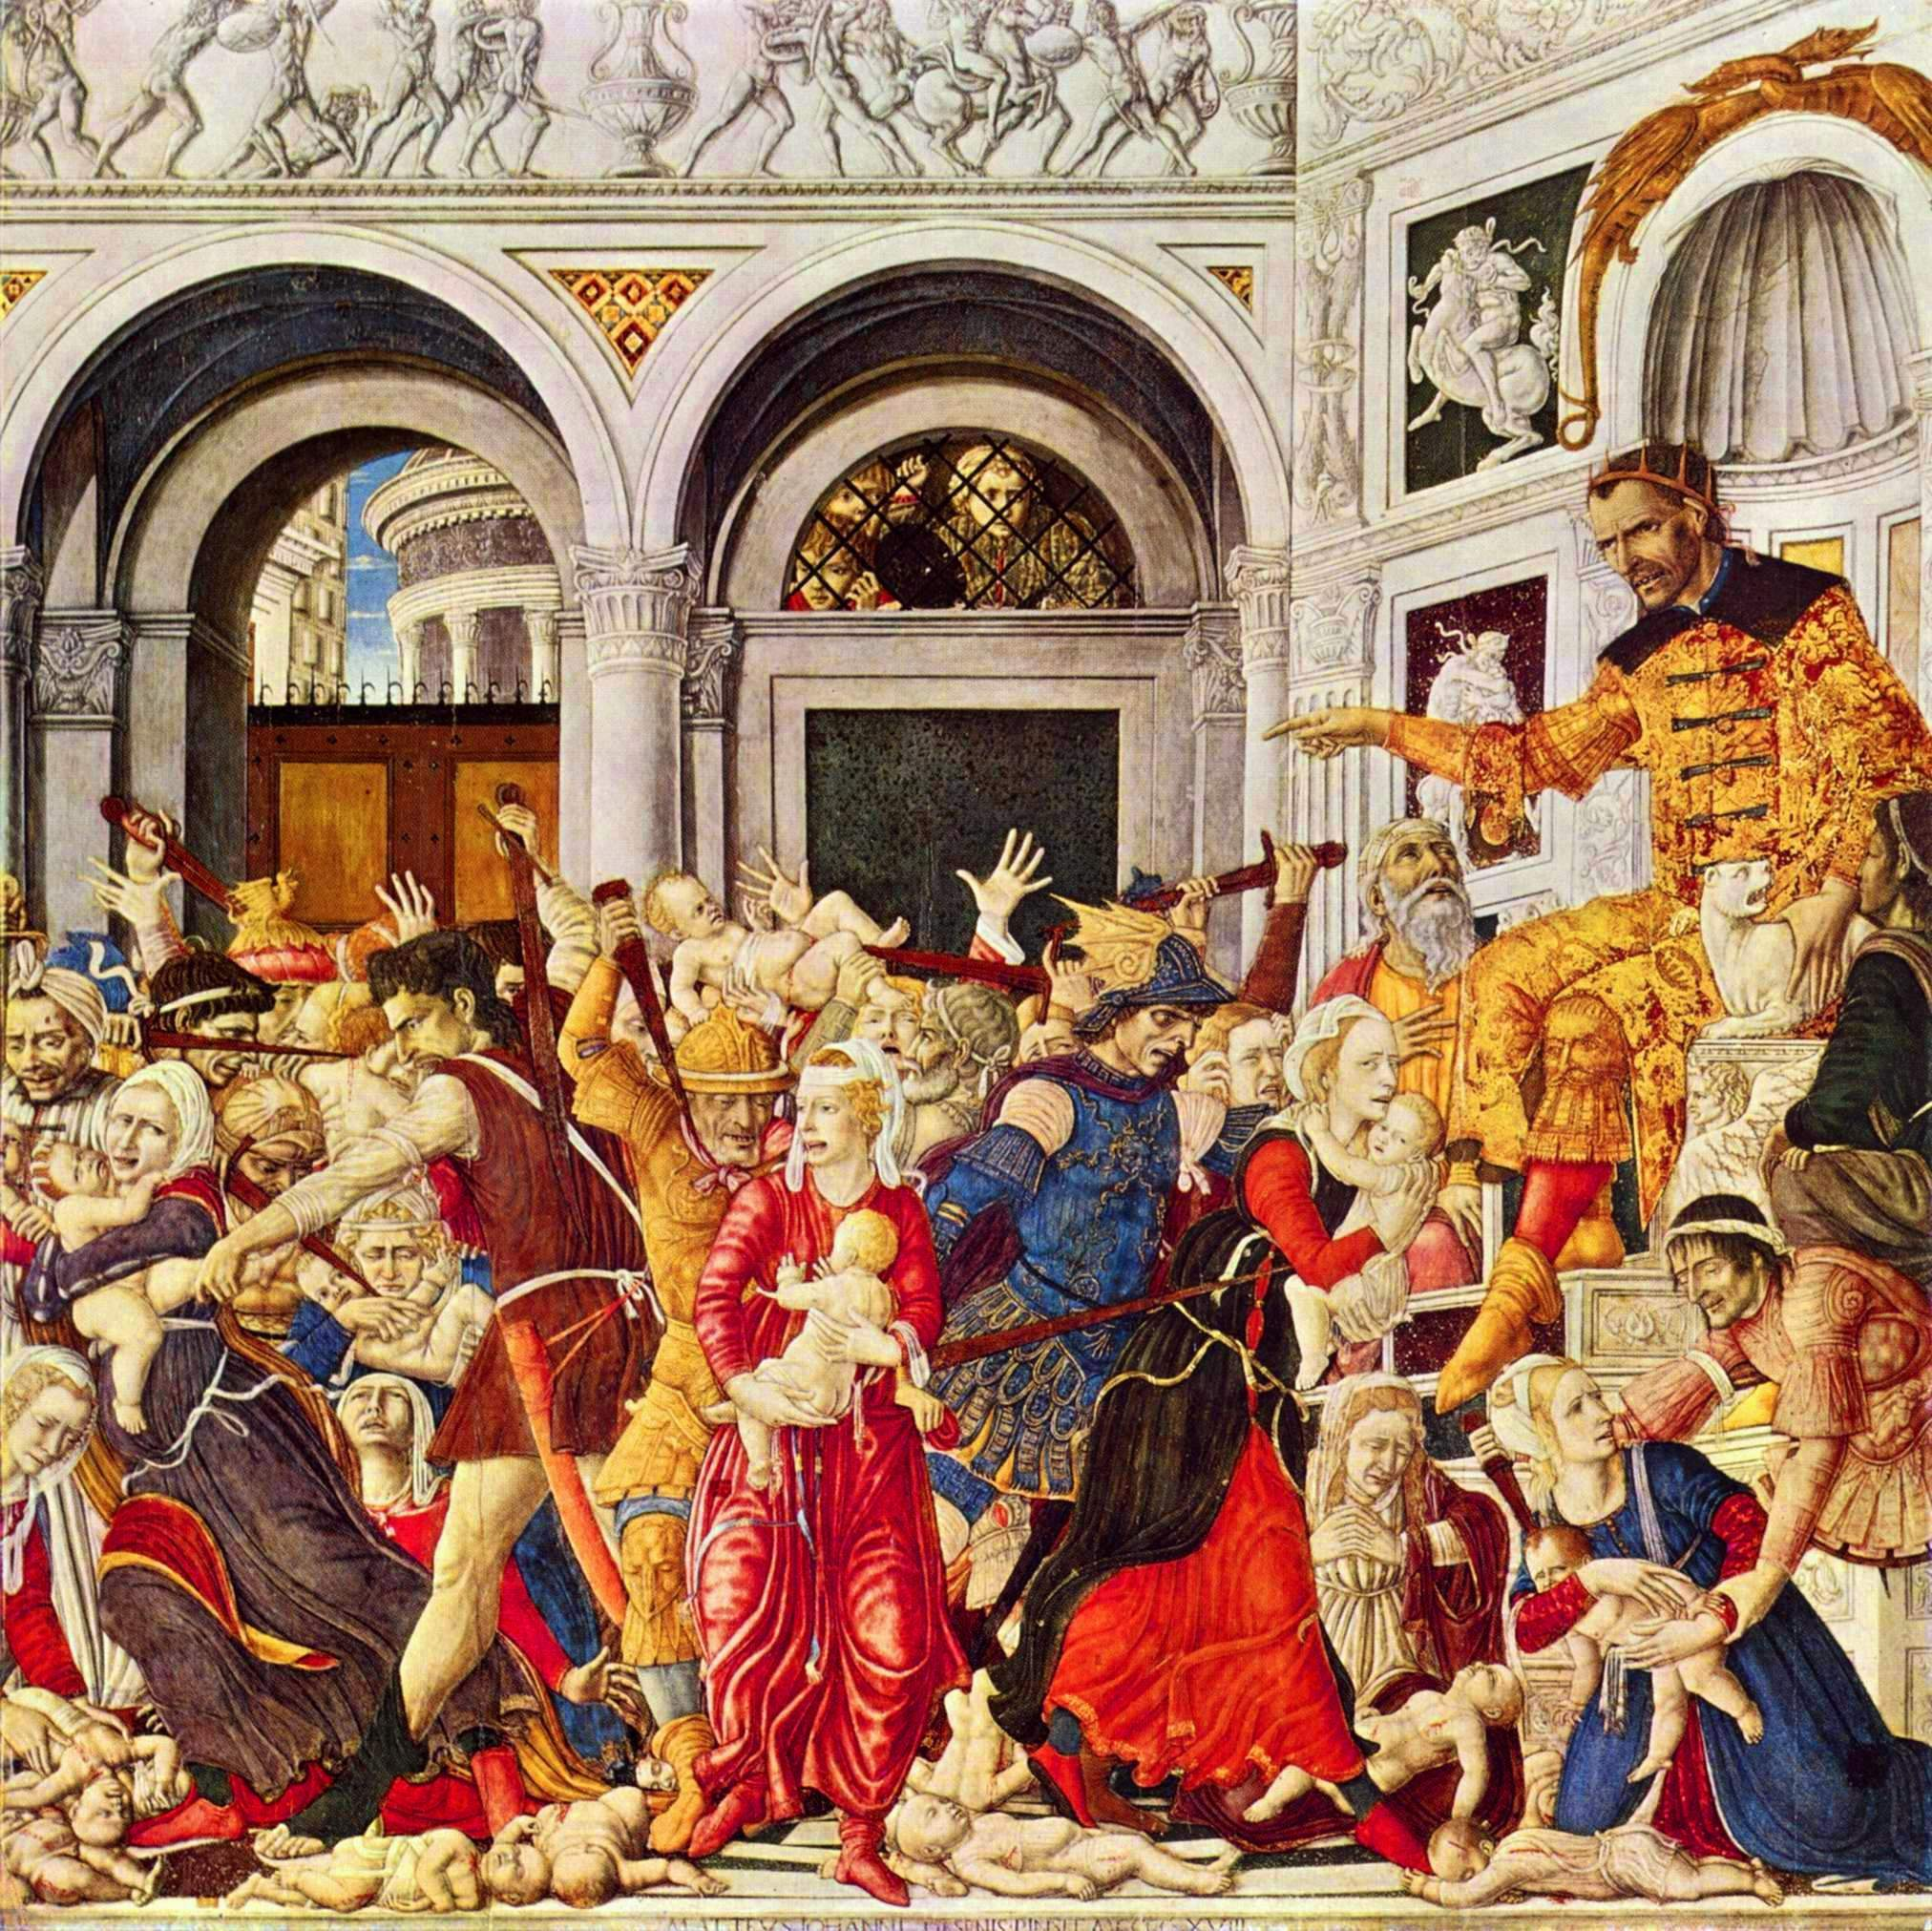 Massacre of the Innocents is a tempera on panel painting by Matteo di Giovanni, produced between 1450 and 1500, possibly in 1478, 1468 or 1488, probably in Siena. It was commissioned by Alfonso II of Naples, then living in Siena as part of the campaign against the Medici. It was probably produced to commemorate the inhabitants of Otranto killed by the Ottomans in 1480 whose relics were moved into the church of Santa Caterina at Formiello at Alfonso's request - the same church also originally housed the painting. It is now in the National Museum of Capodimonte, an art museum located in the Palace of Capodimonte, a grand Bourbon palazzo in Naples, Italy.